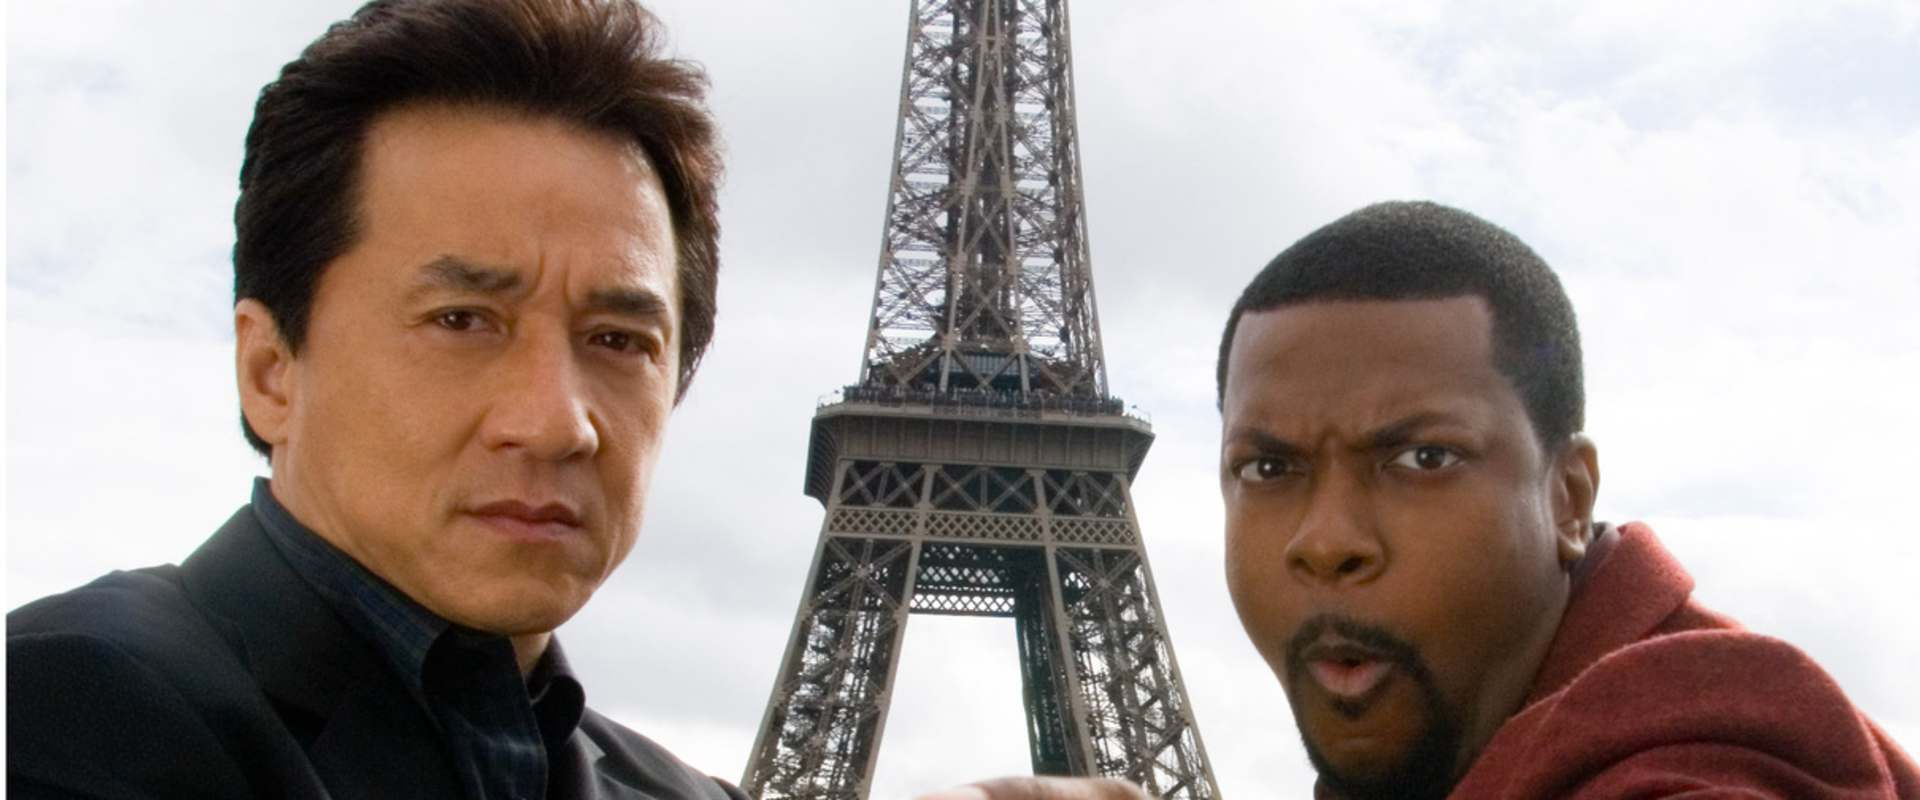 Rush Hour 3 background 1